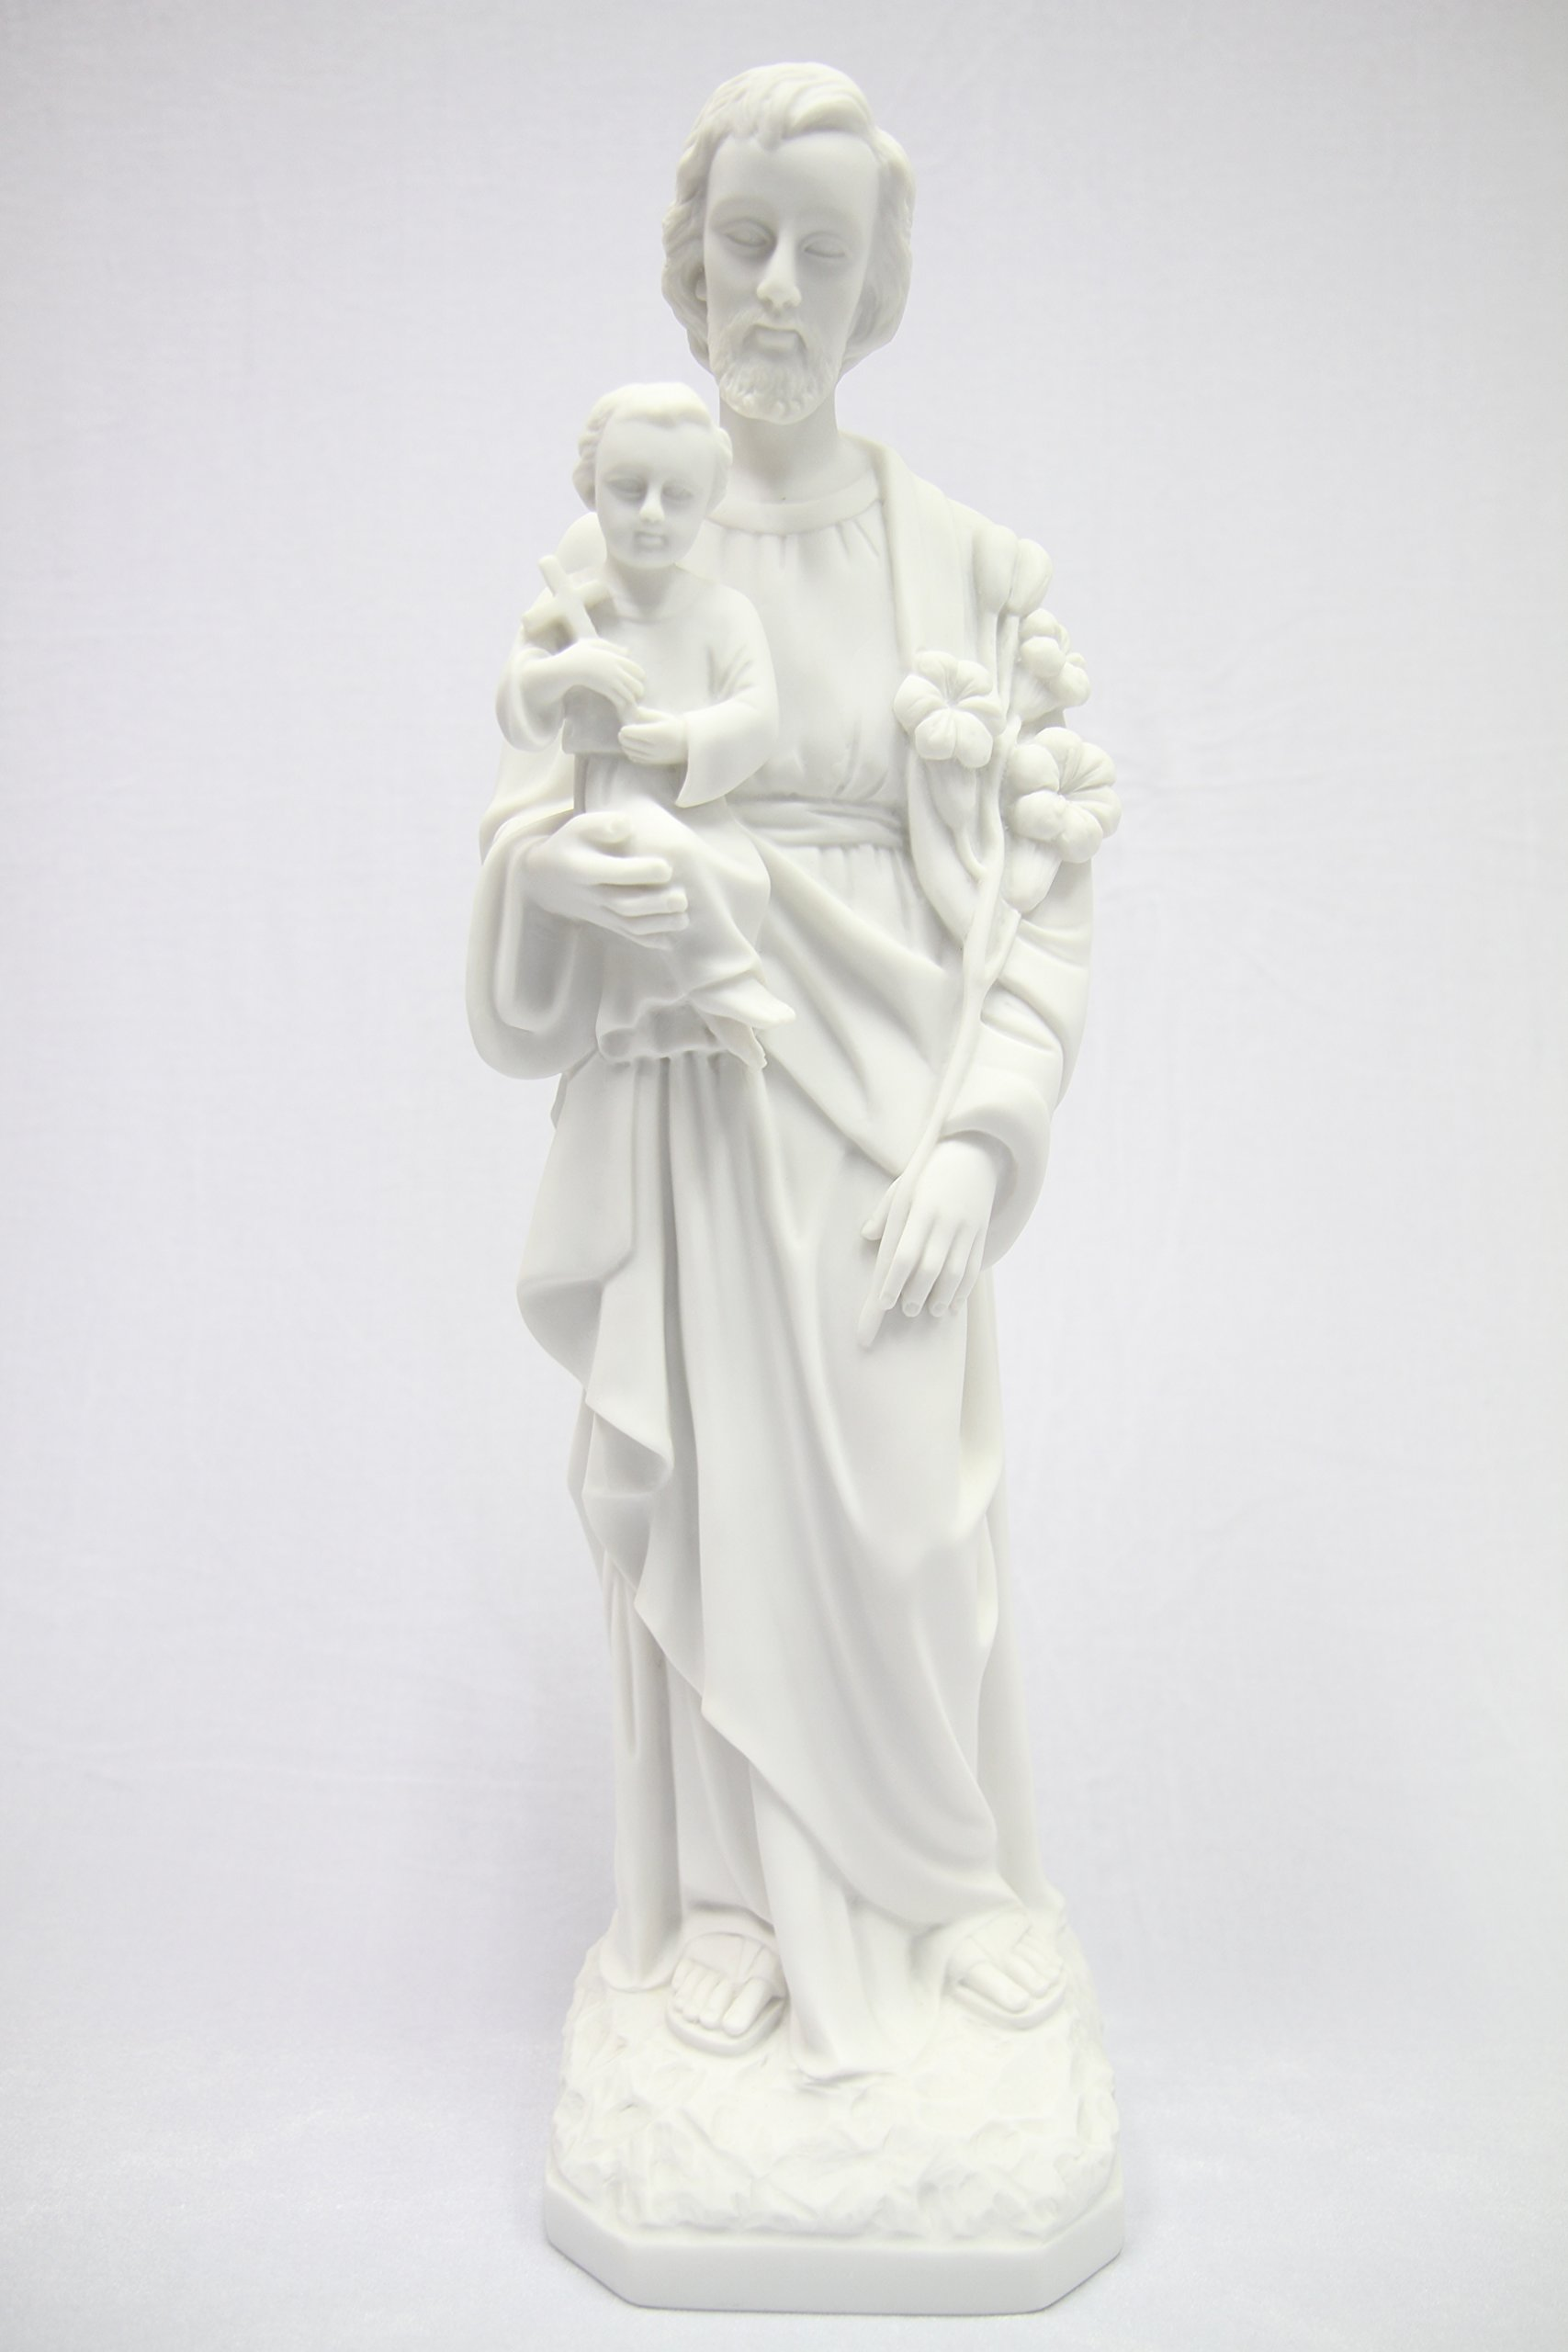 19'' Saint St Joseph with Holy Child Jesus Baby Catholic Religious Statue Sculpture Vittoria Collection Made in Italy Indoor Outdoor Garden